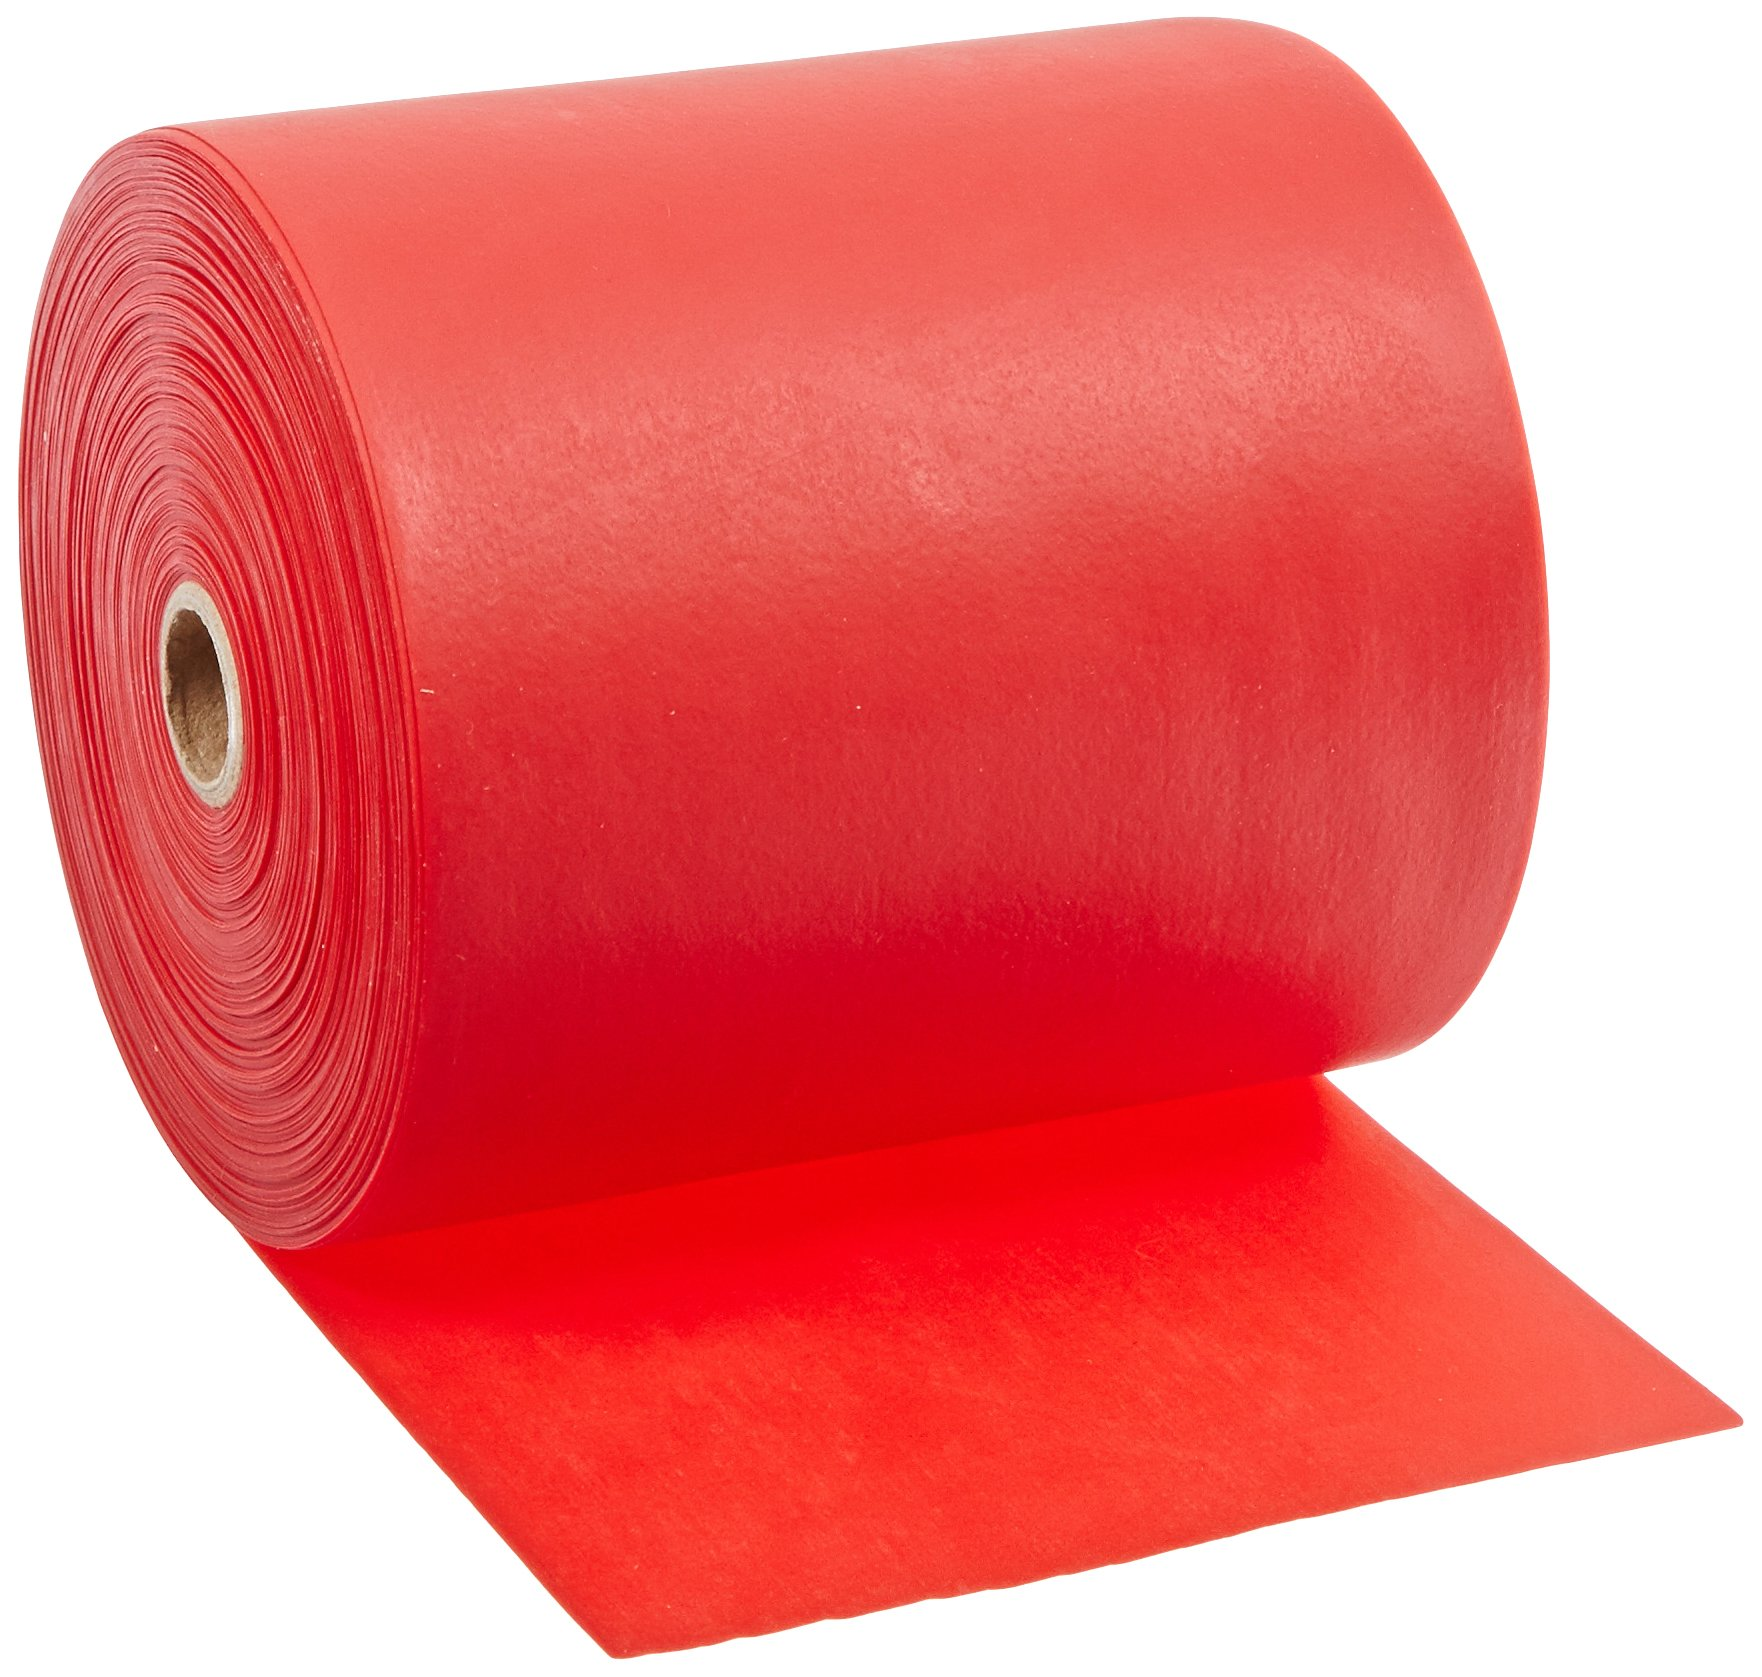 Cando 10-5622 Red Latex-Free Exercise Band, Light Resistance, 50 yd Length by Cando